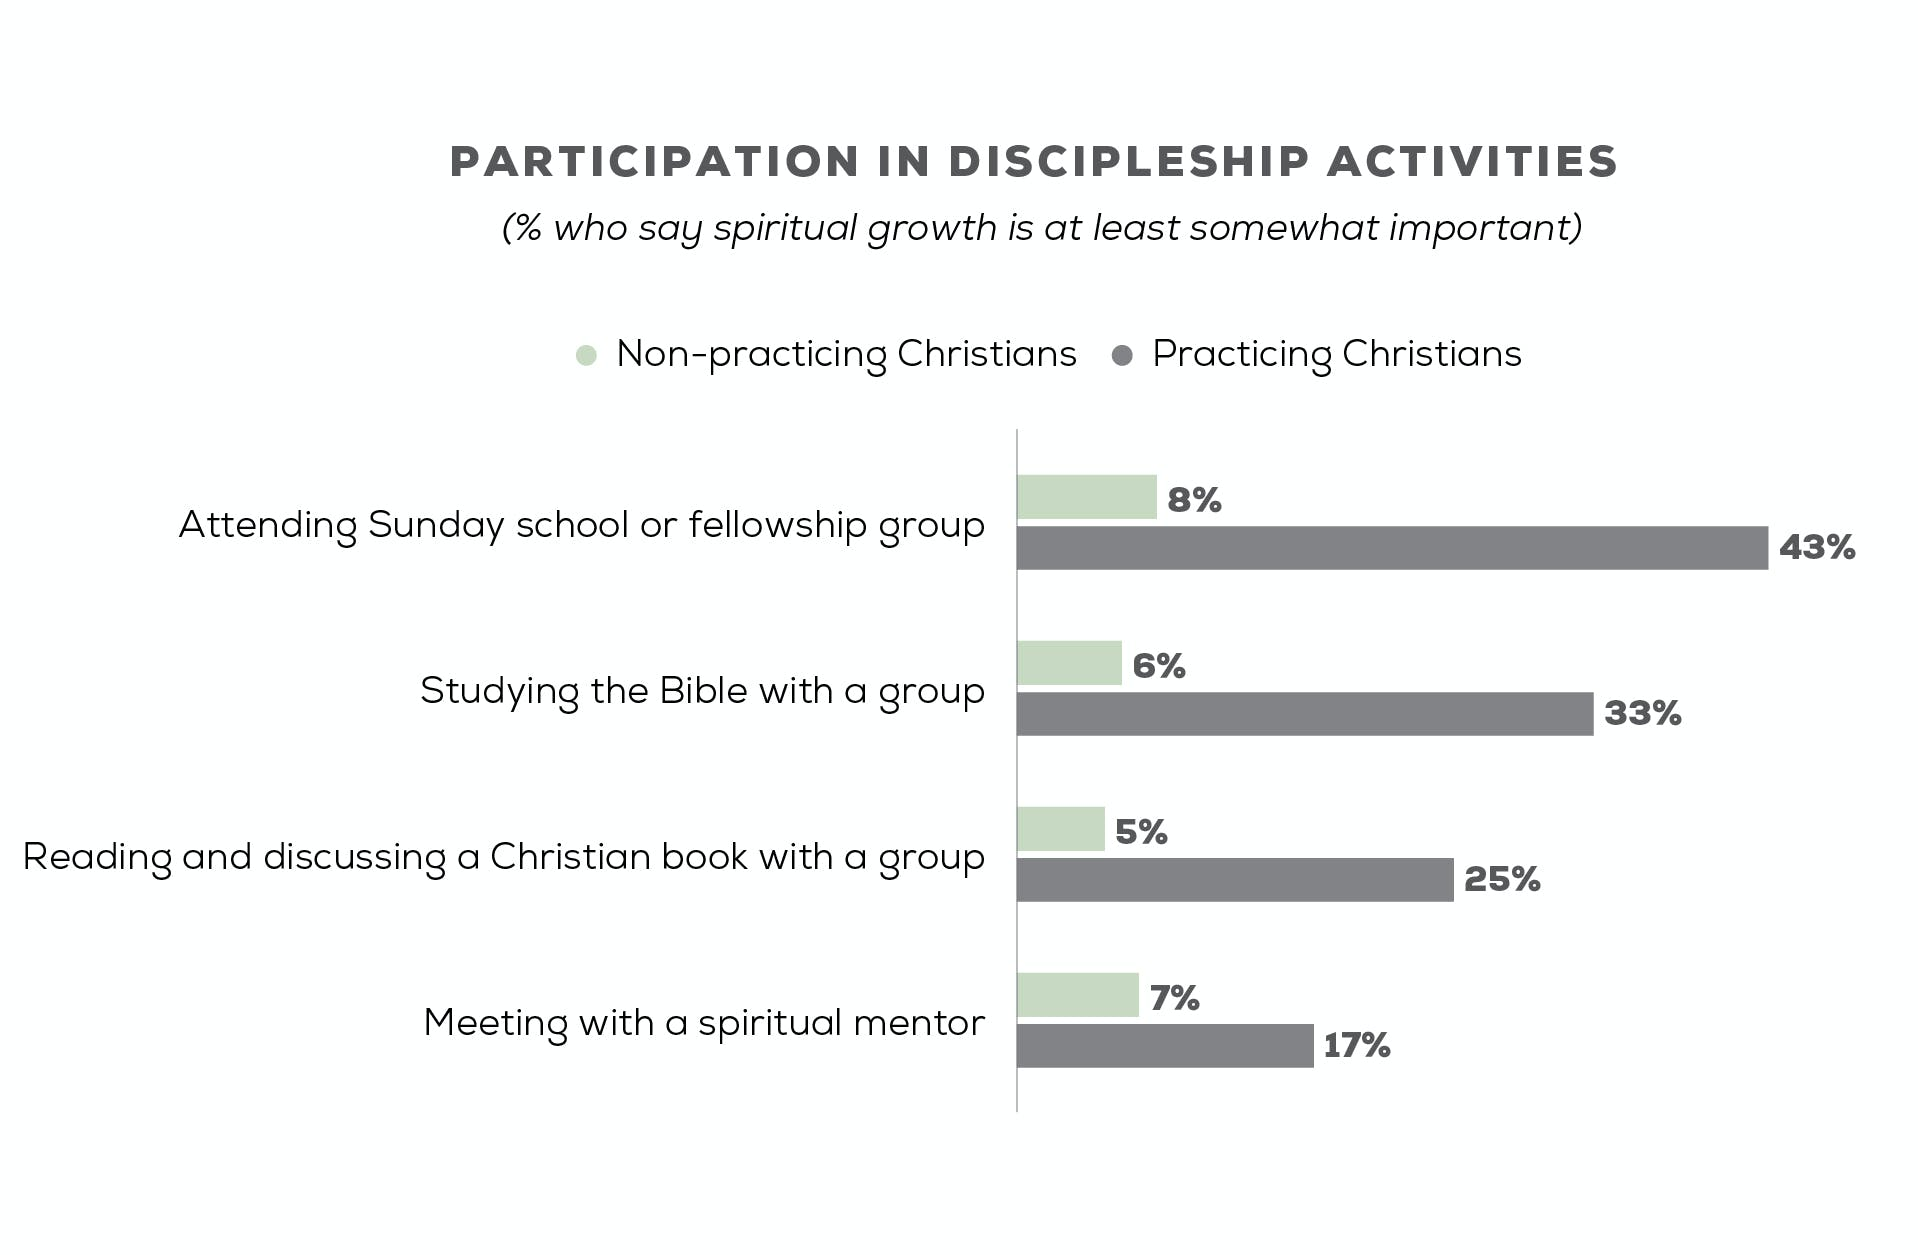 Participation in discipleship activities